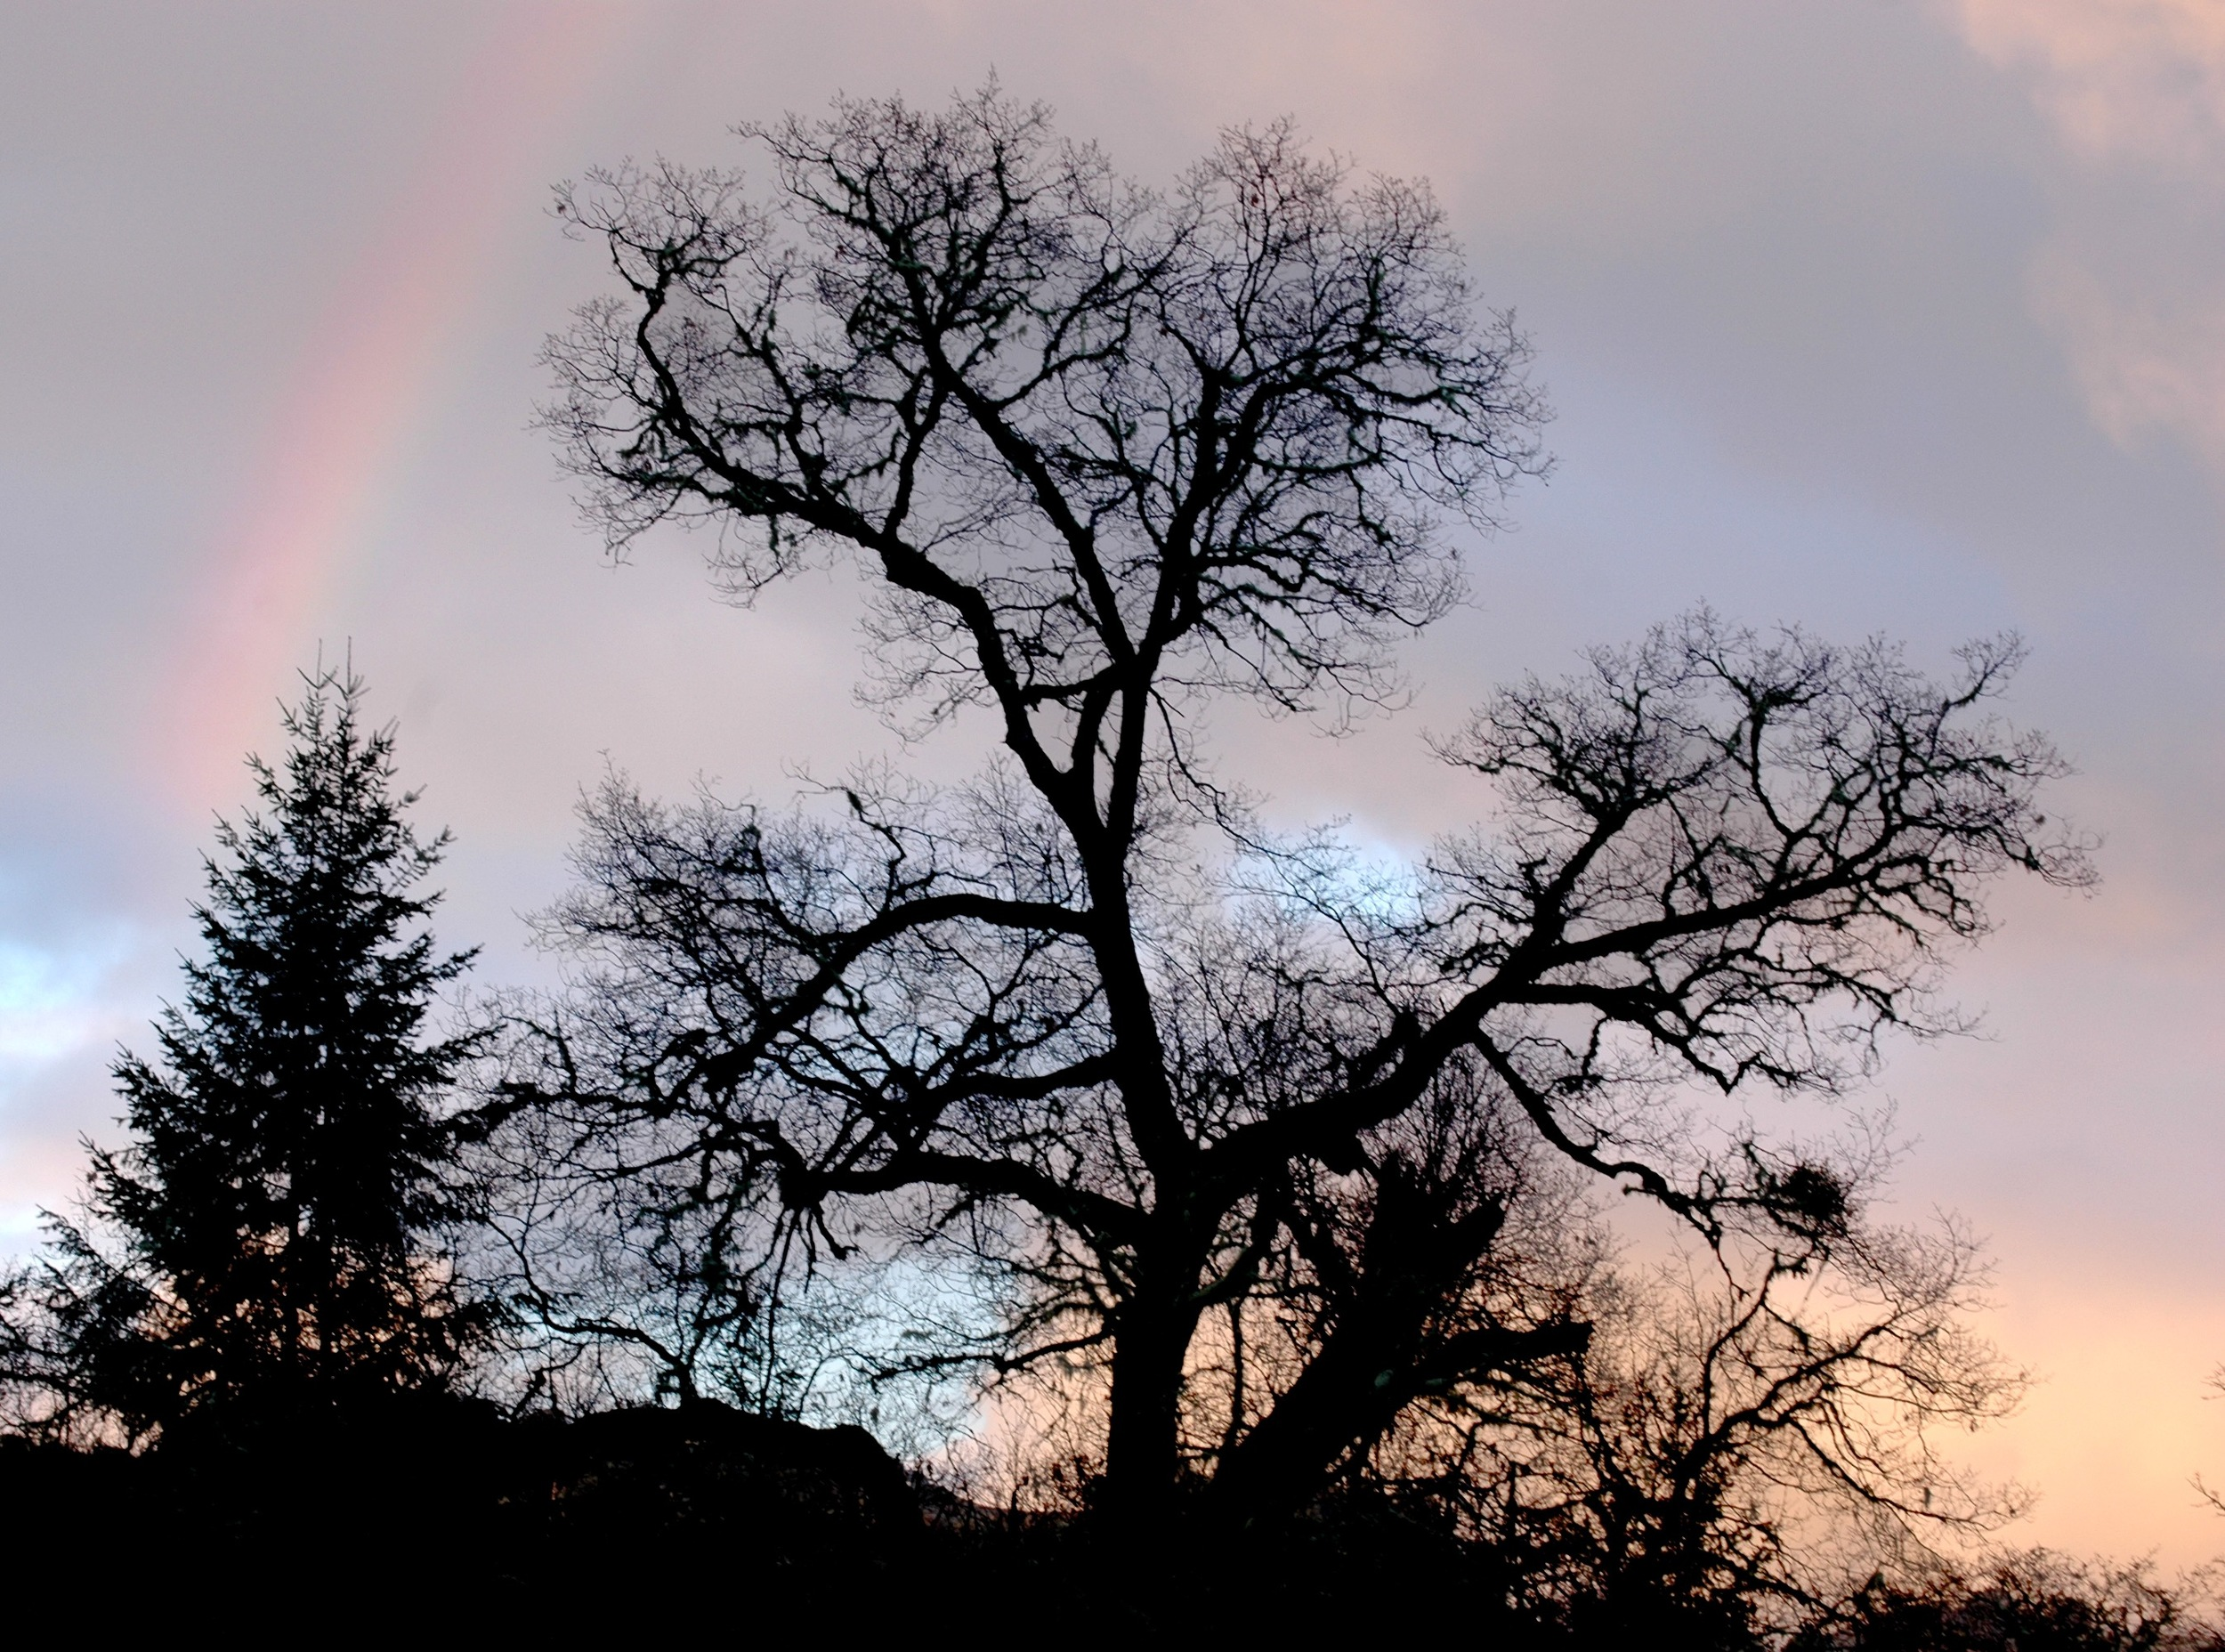 Black oak with rainbow. Yet another large section of this tree just fell off and is going to take some creative and thoughtful planning to clean up safely. Should make a good episode for my new Homestead Life category, being for snippets of life and incidents here. Also should provide some nice wood for making stuff and some bark for tanning. The early tanning industry in California was apparently using Black and White Oaks. Later they switched over to Tan Oak which is what I mostly use now. My use of Black Oak has so far been promising.